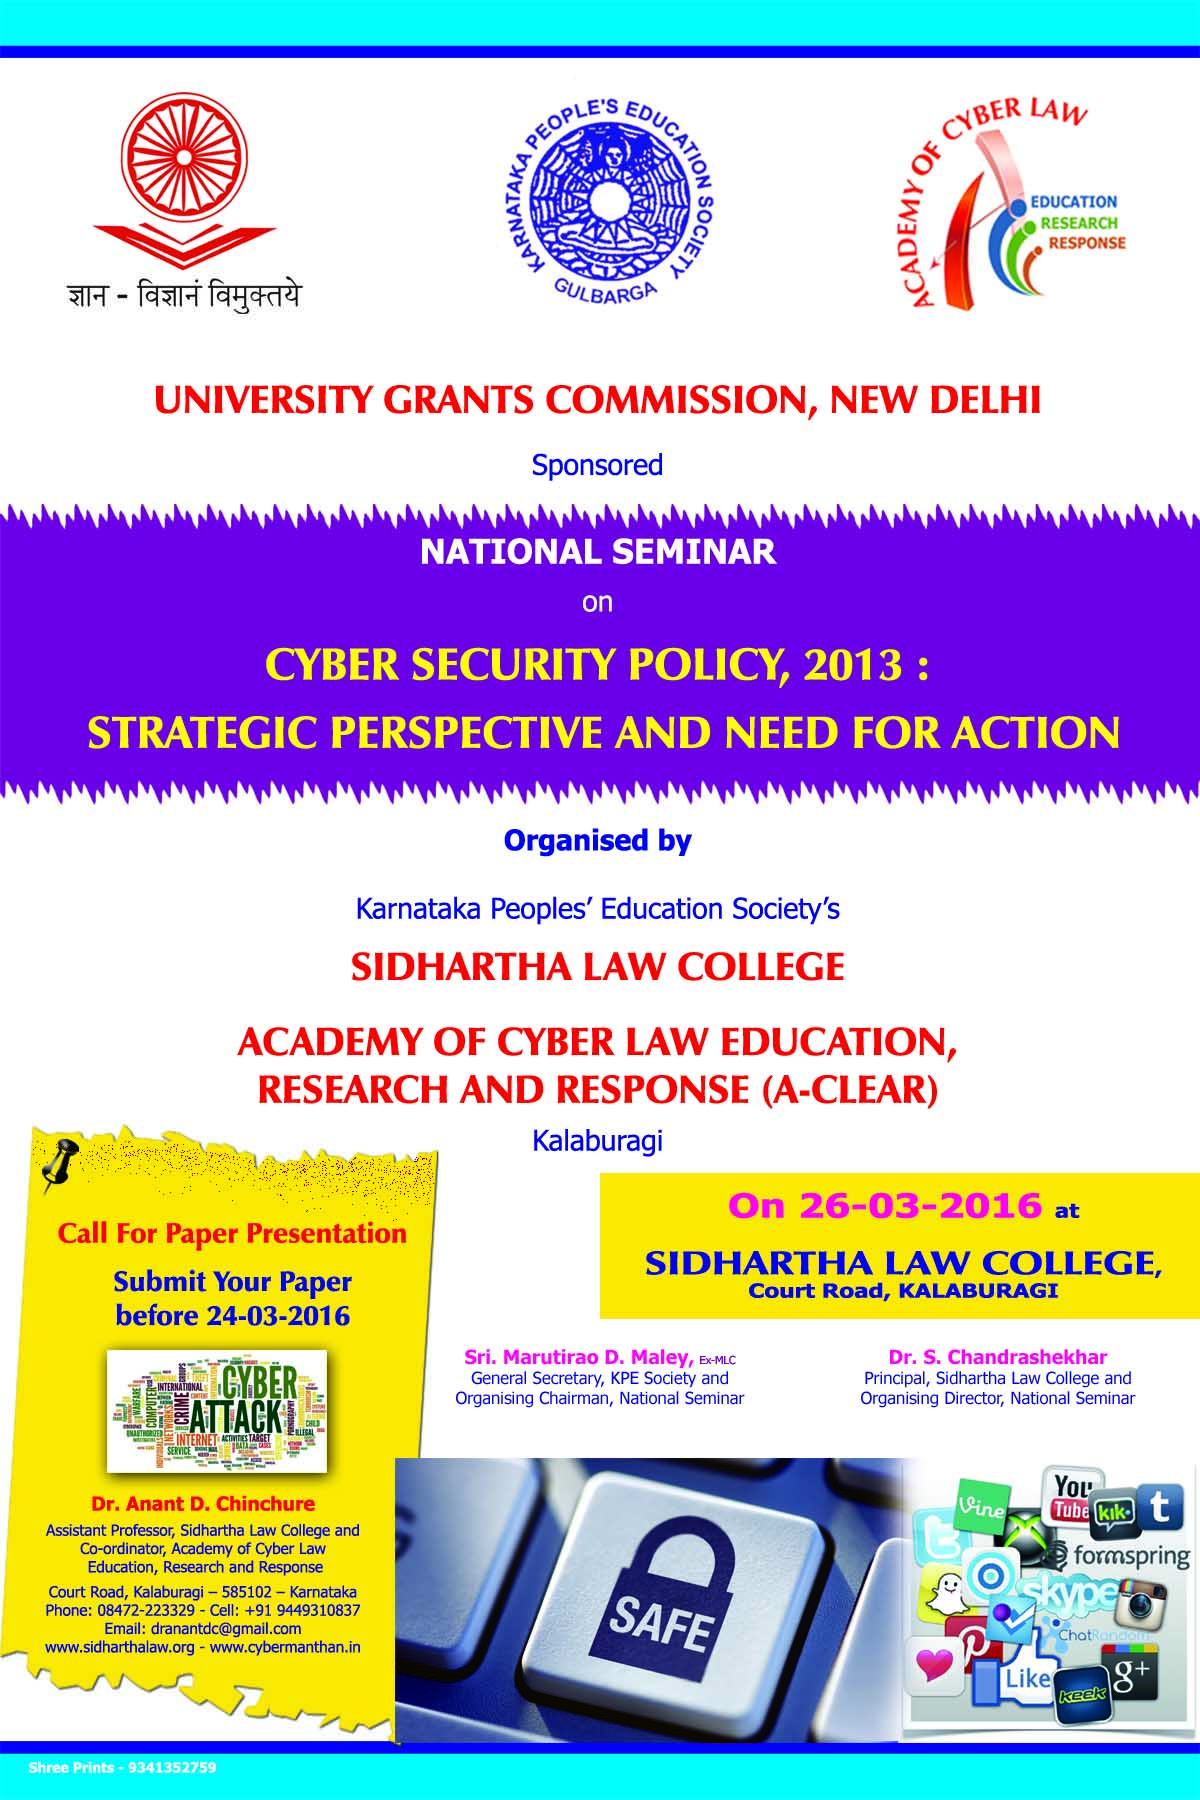 Sidhartha Law College's One-day National Seminar on Cyber Security Policy, 2013